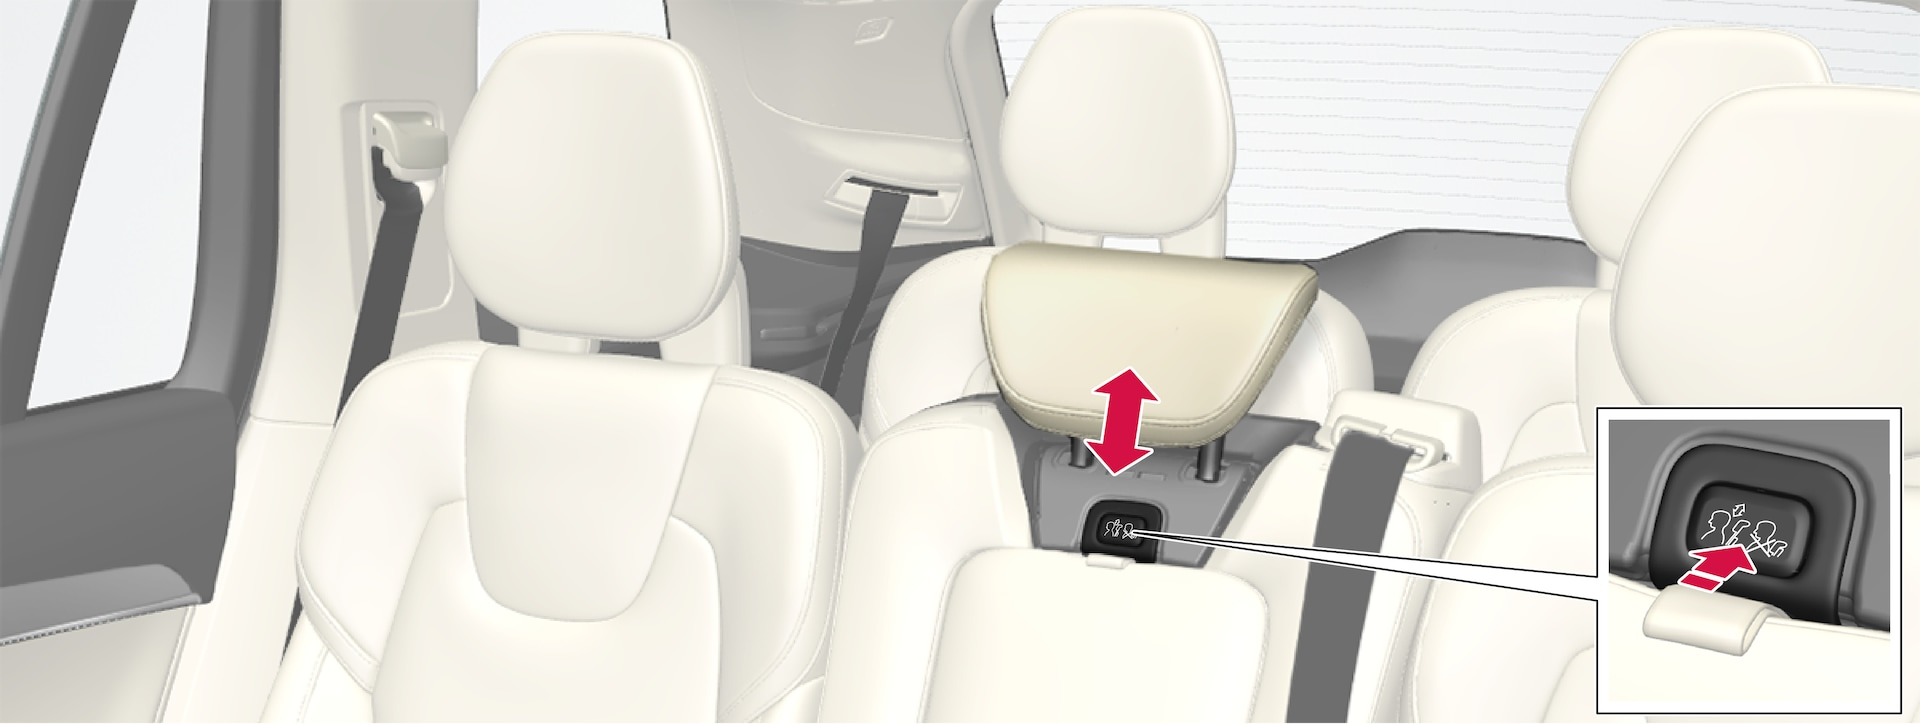 P5-1507-2nd seat row-Adjust headrest center back